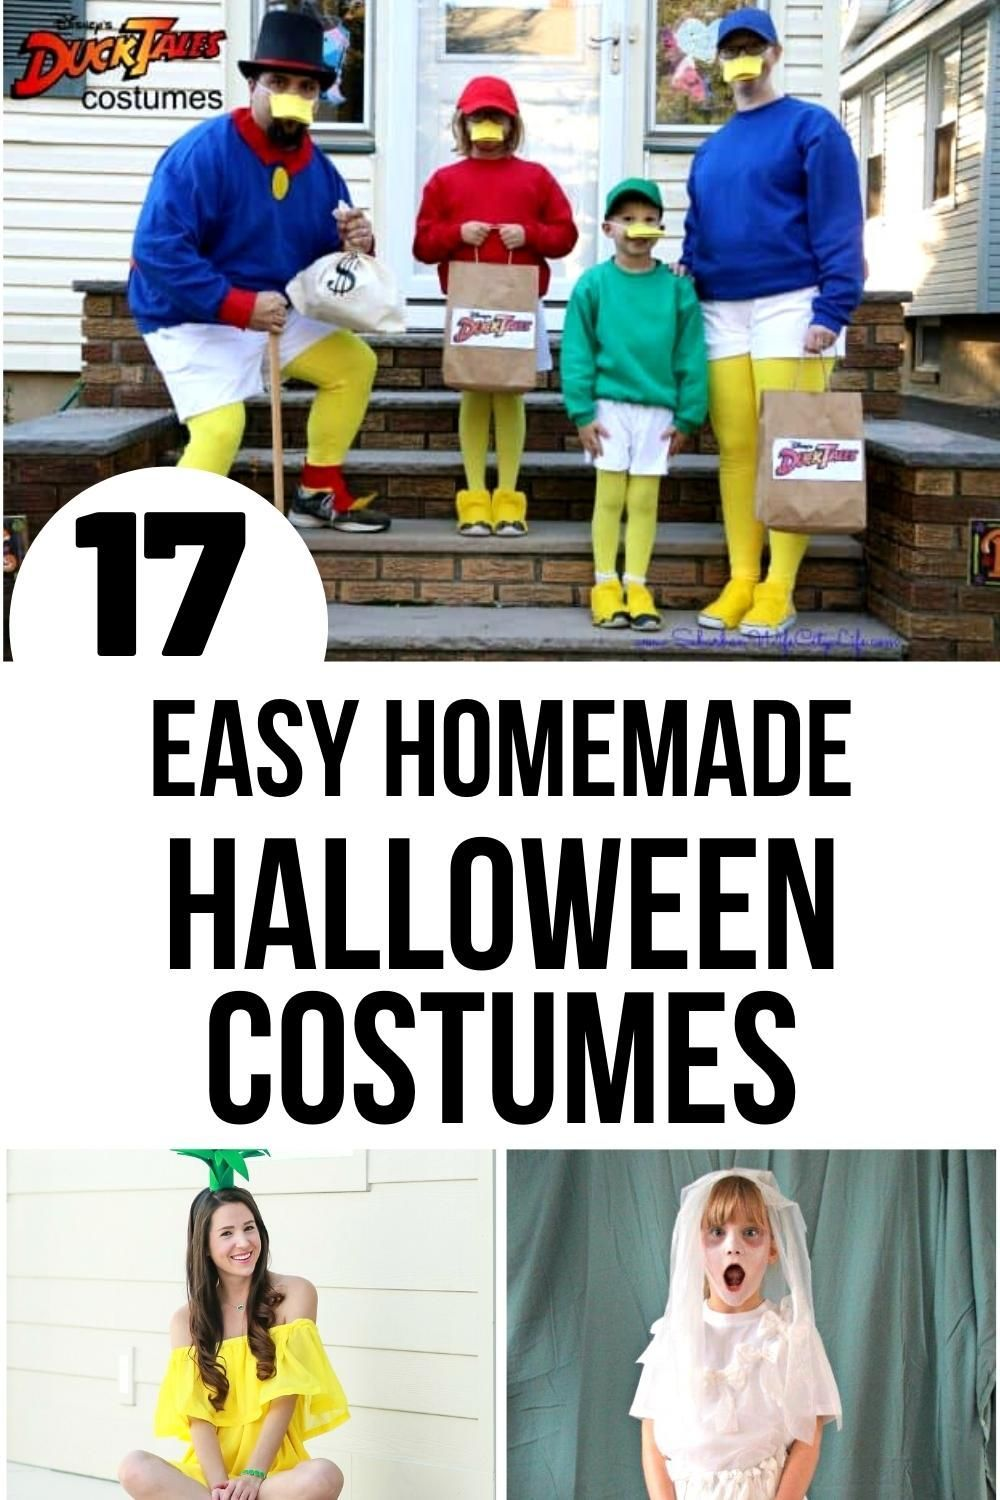 Diy Halloween Costumes For All Ages To Get Dressed Up And Celebrate Diy Halloween Costumes Homemade Halloween Costumes Easy Homemade Halloween Costumes